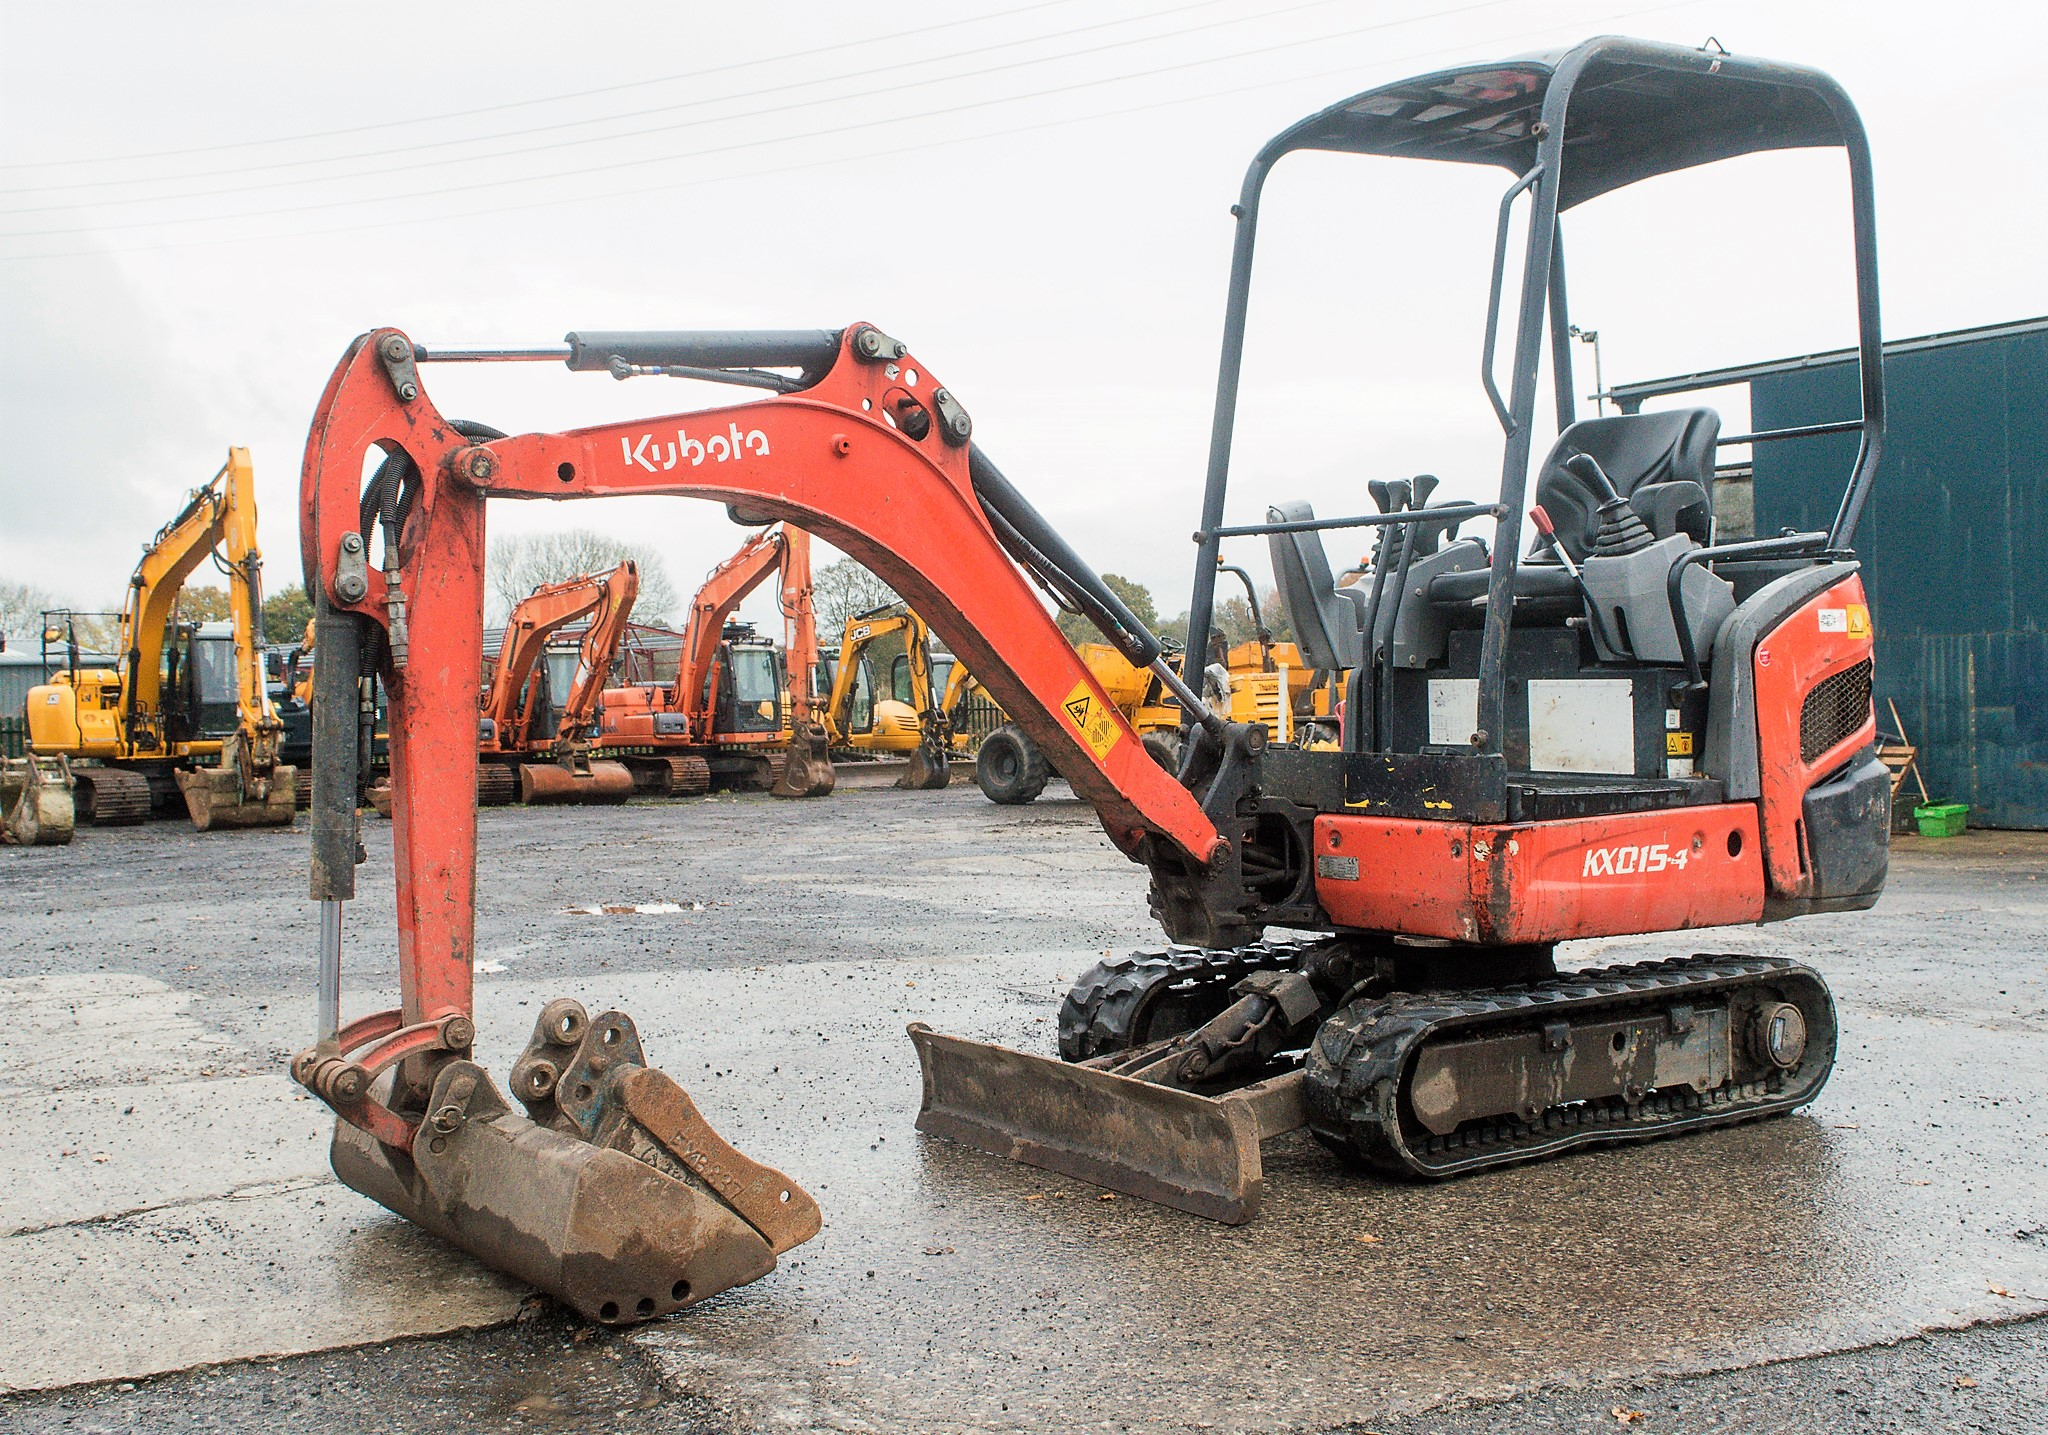 Lot 17 - Kubota KX015-4 1.5 tonne rubber tracked mini excavator Year: 2011 S/N: 55607 Recorded Hours: 2768